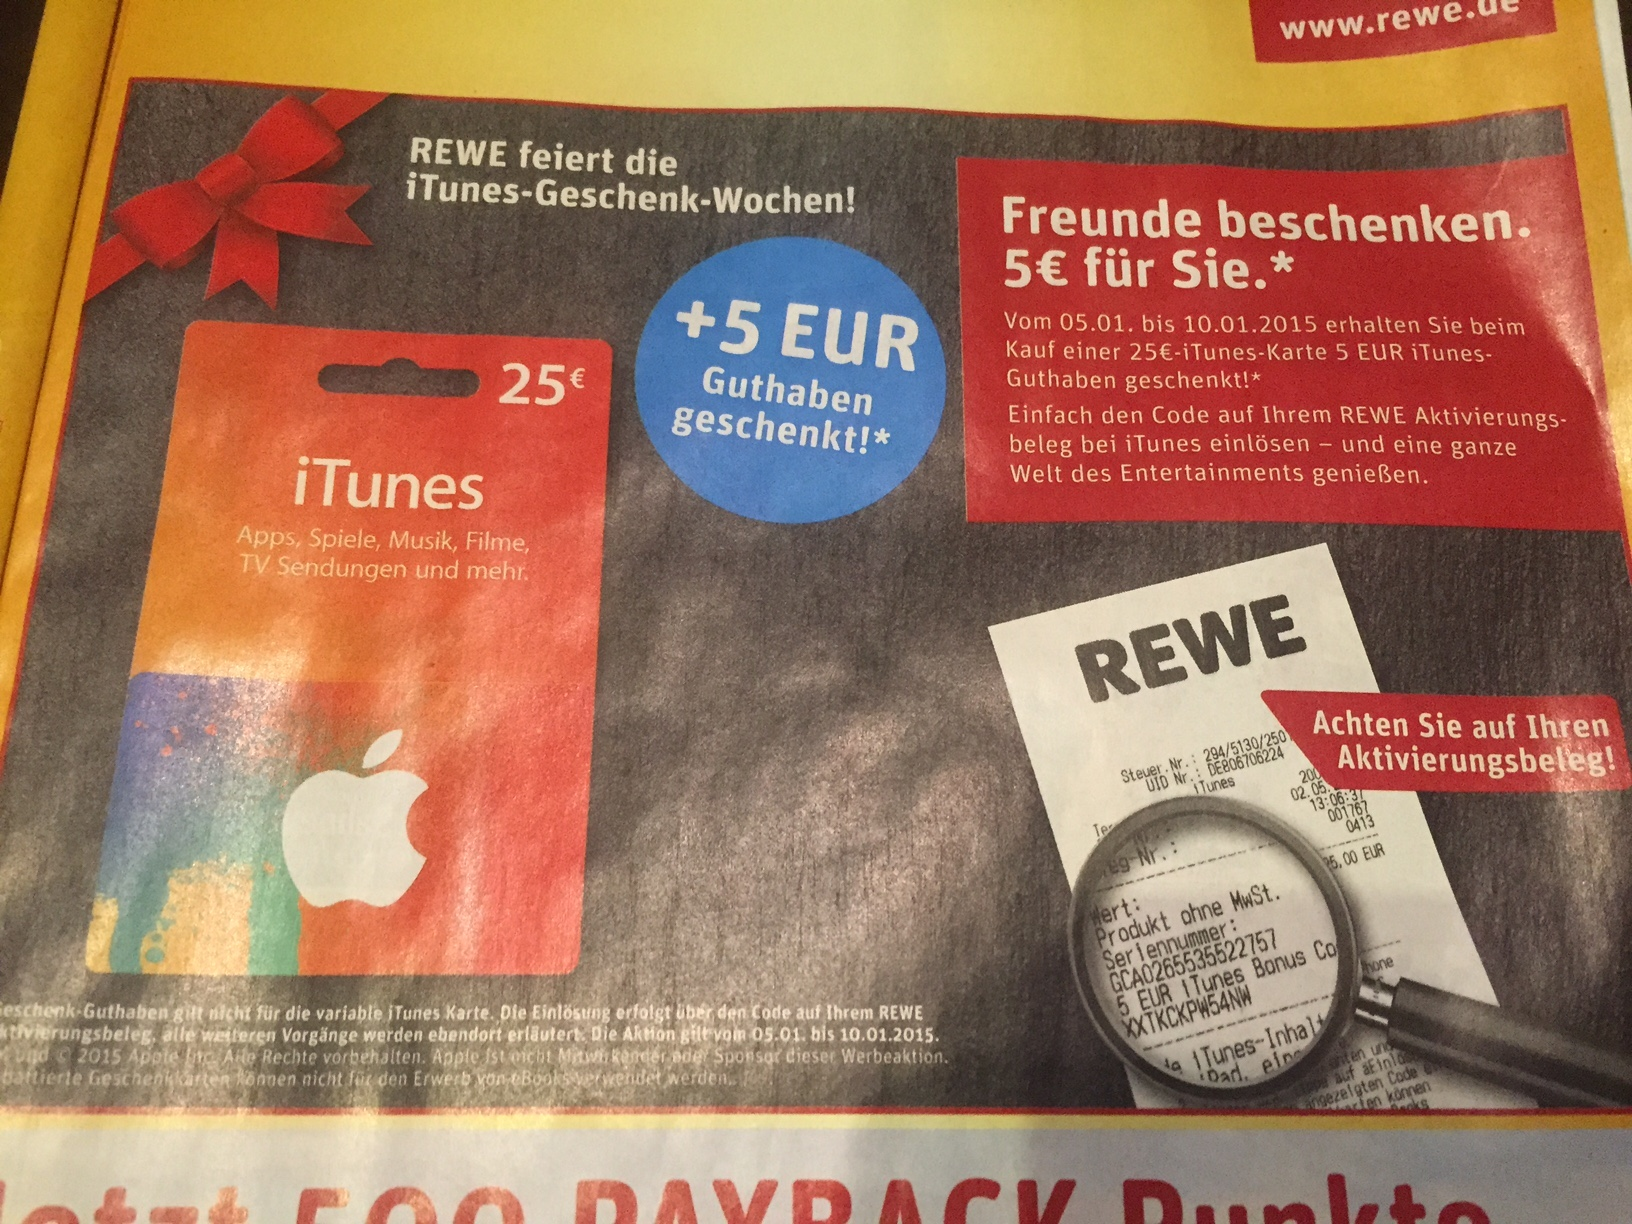 rewe itunes geschenk wochen angebot bluray. Black Bedroom Furniture Sets. Home Design Ideas